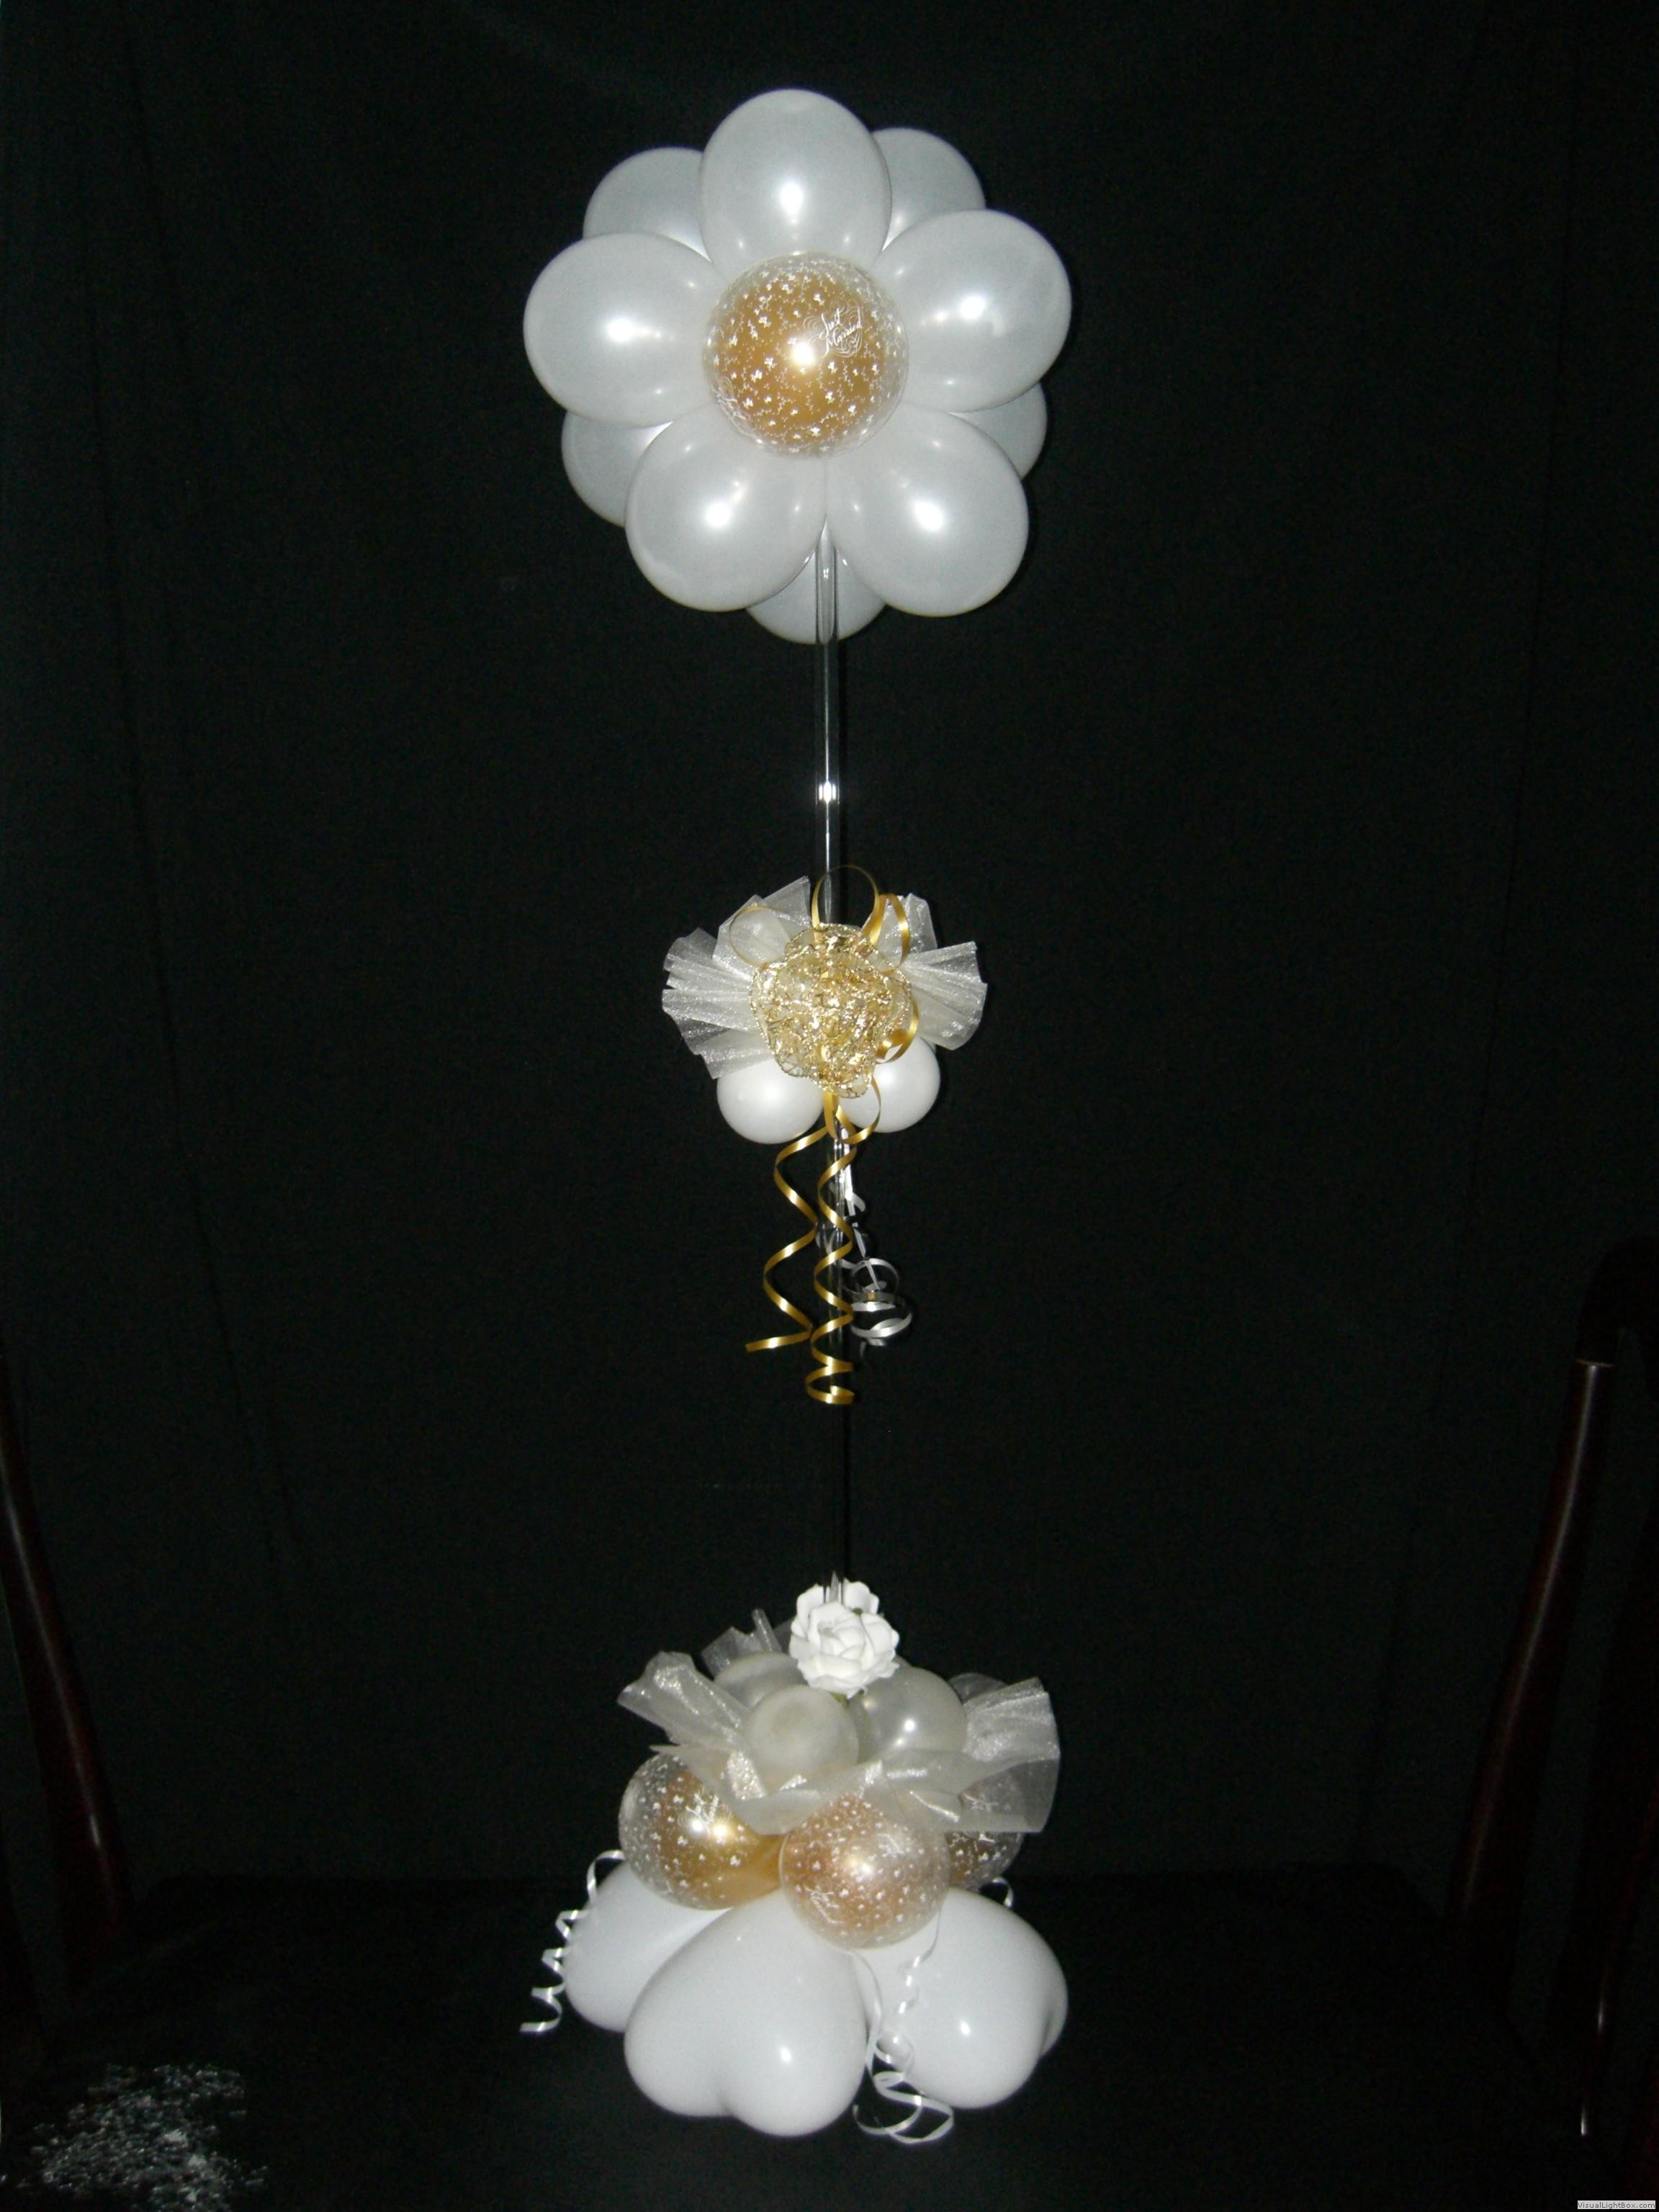 Table Top Balloon Decorations